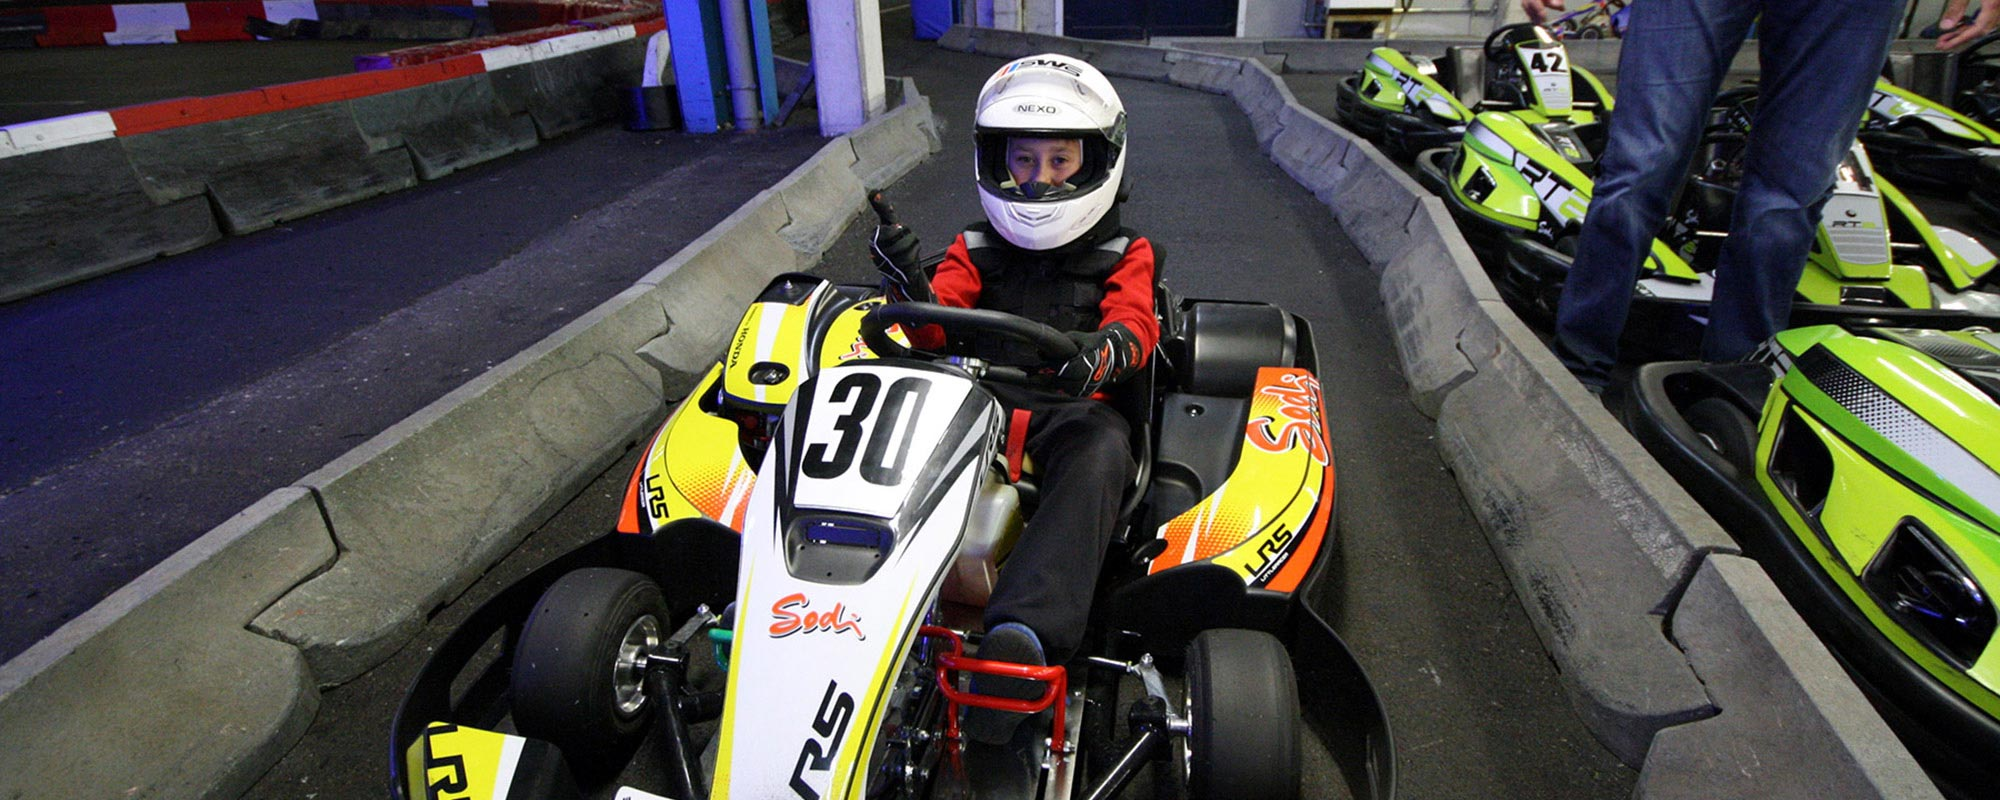 ebafkc-juniorkarting-2000x800-01